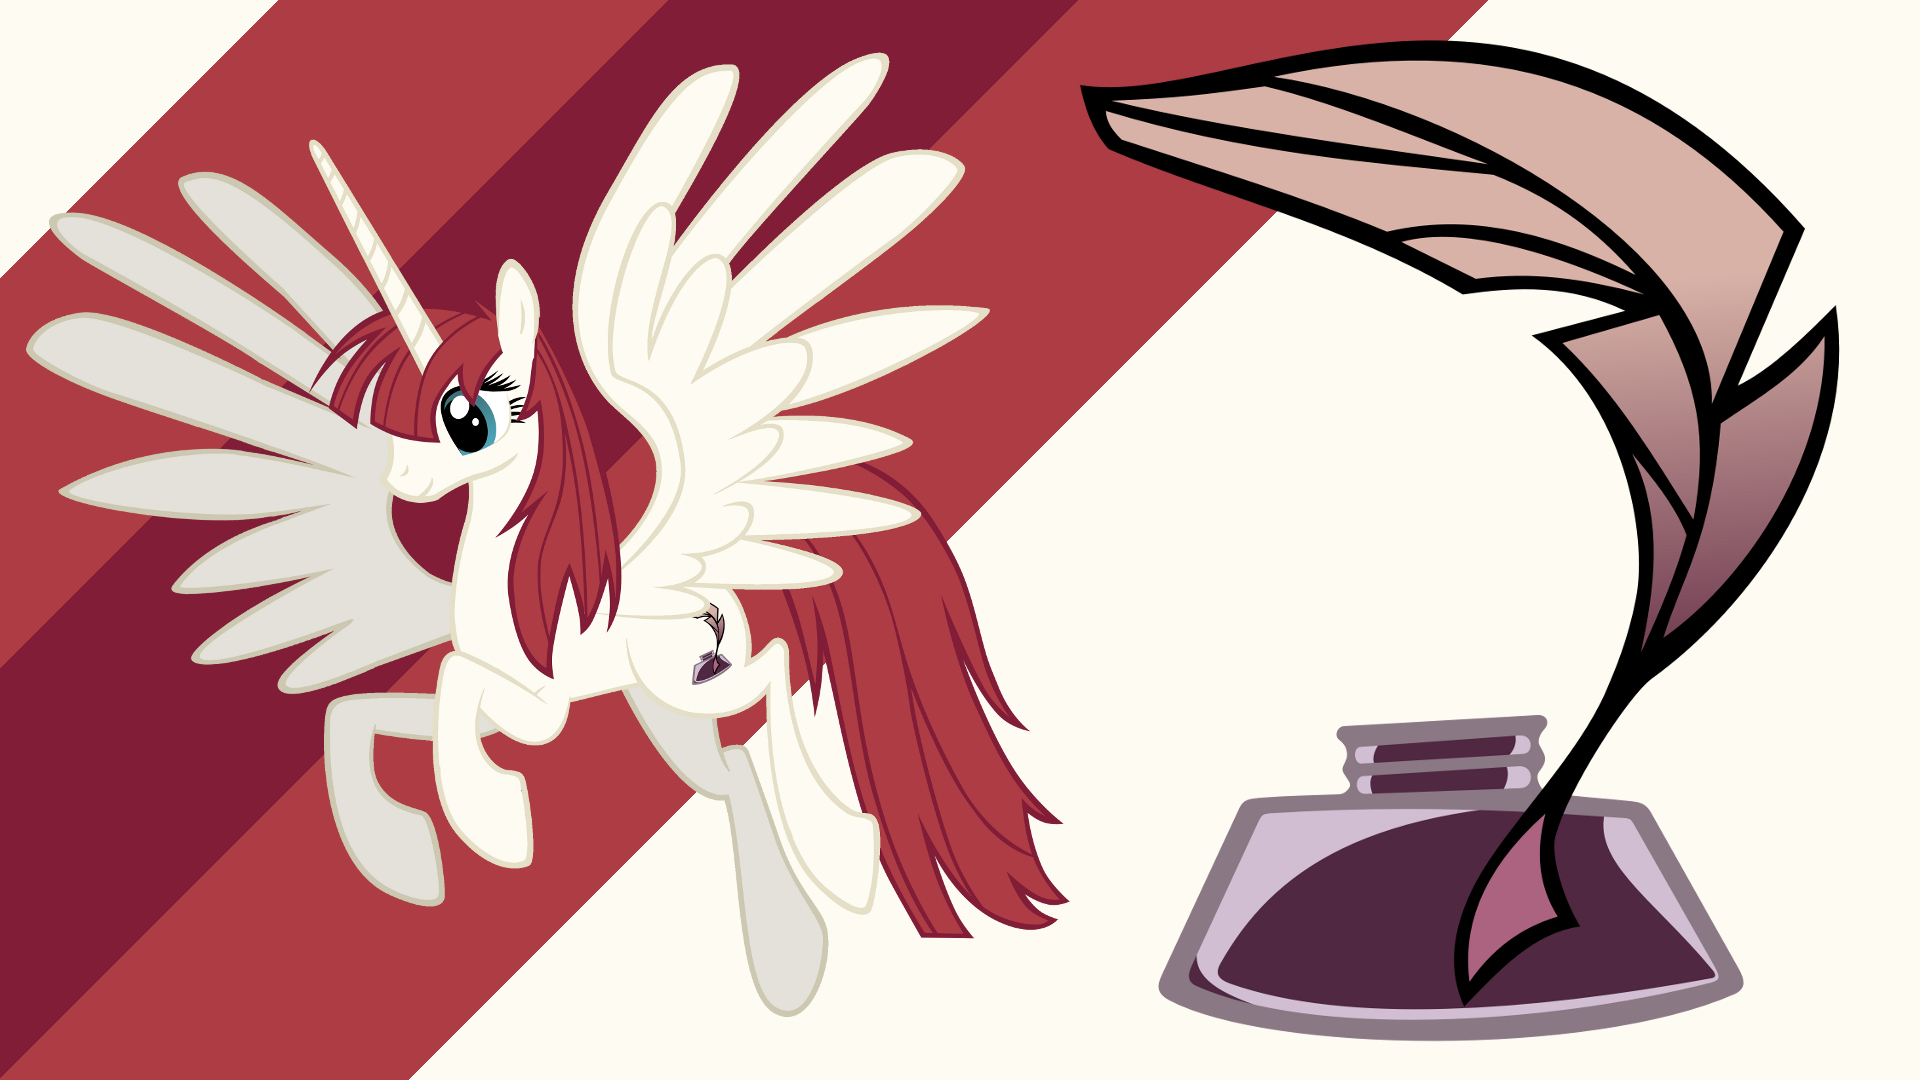 Minimalist Wallpaper 40: Lauren Faust by iBringThaZelc, Softfang and The-Smiling-Pony